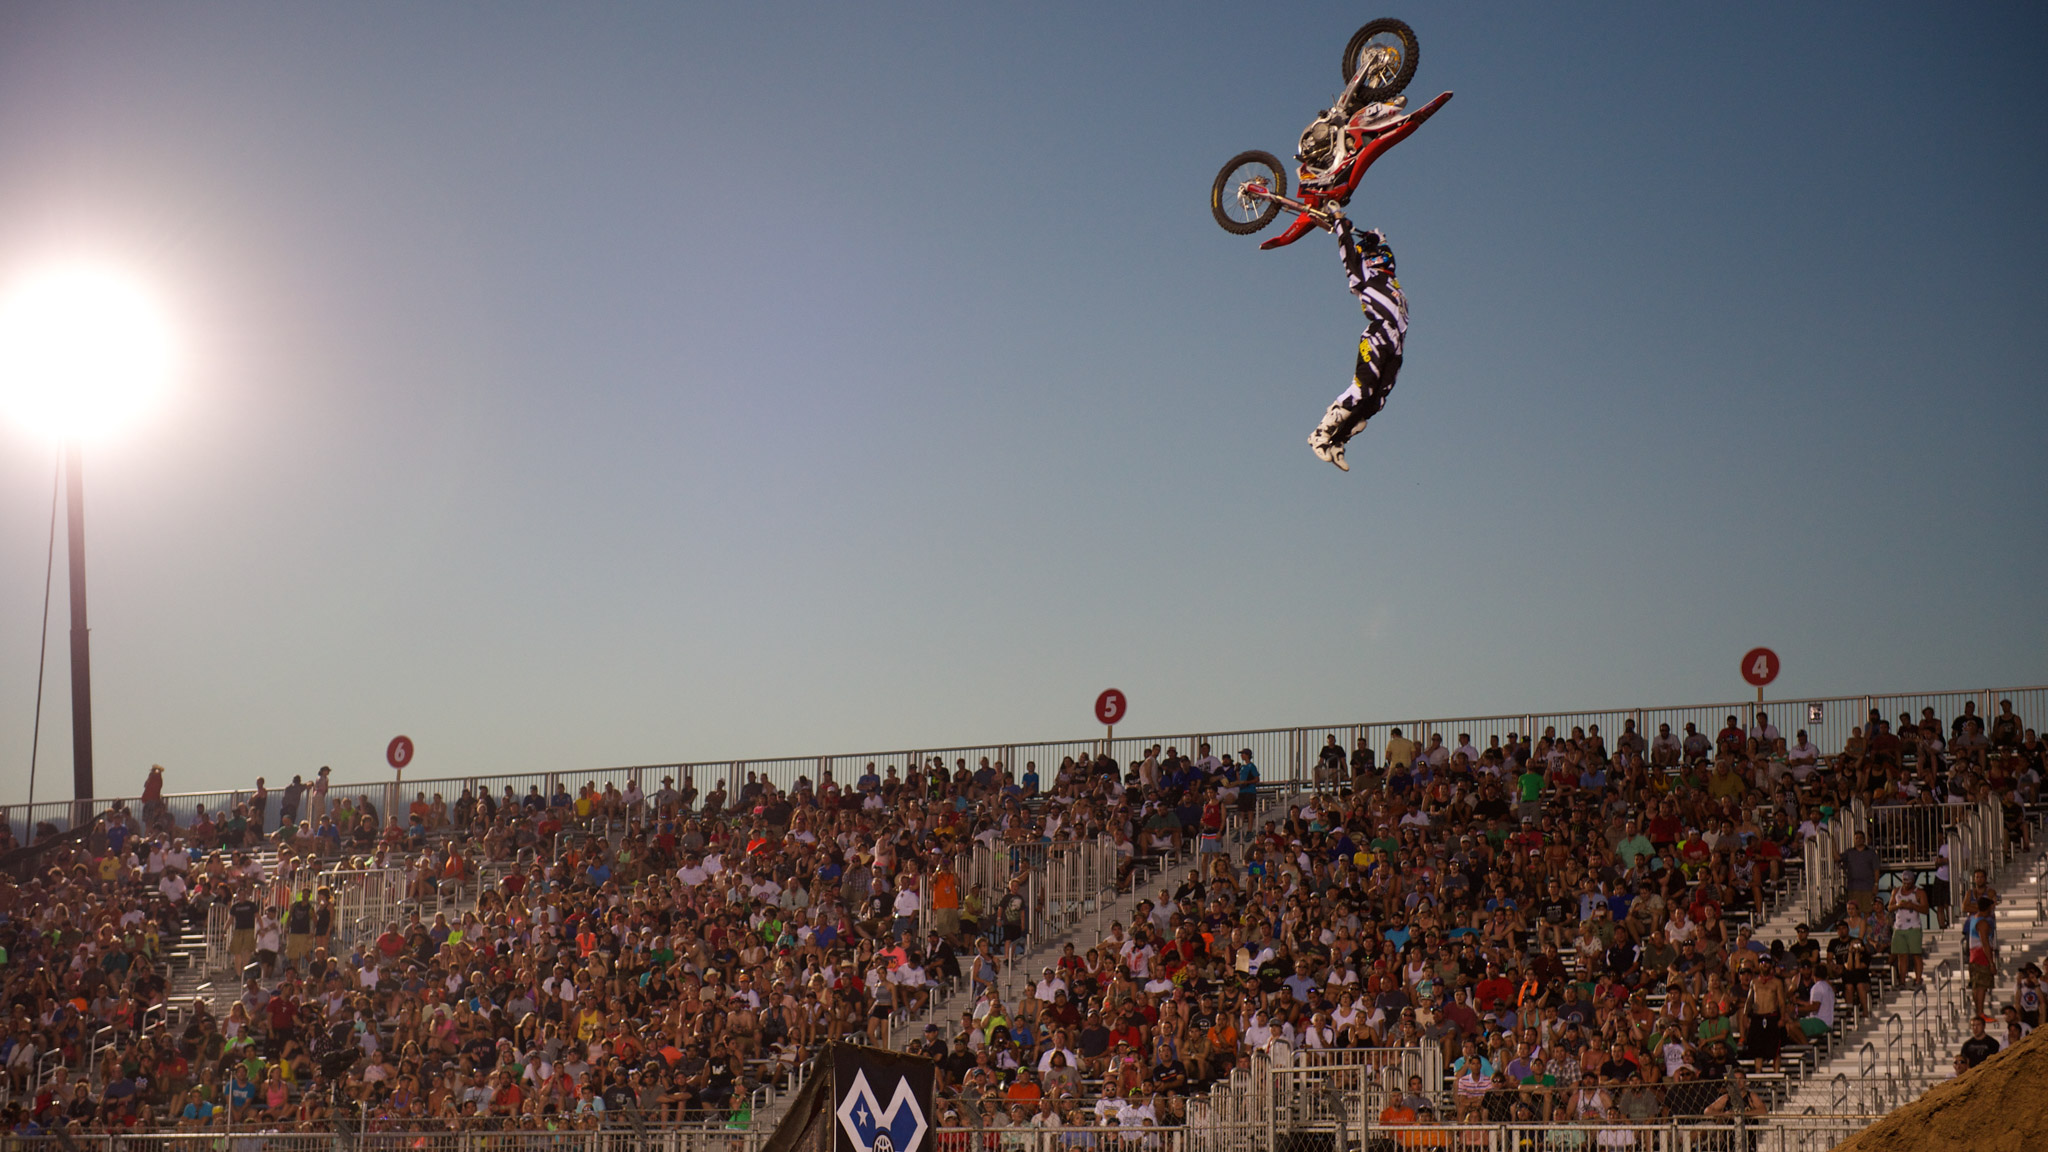 Moto X Best Trick, Saturday at 9 p.m.